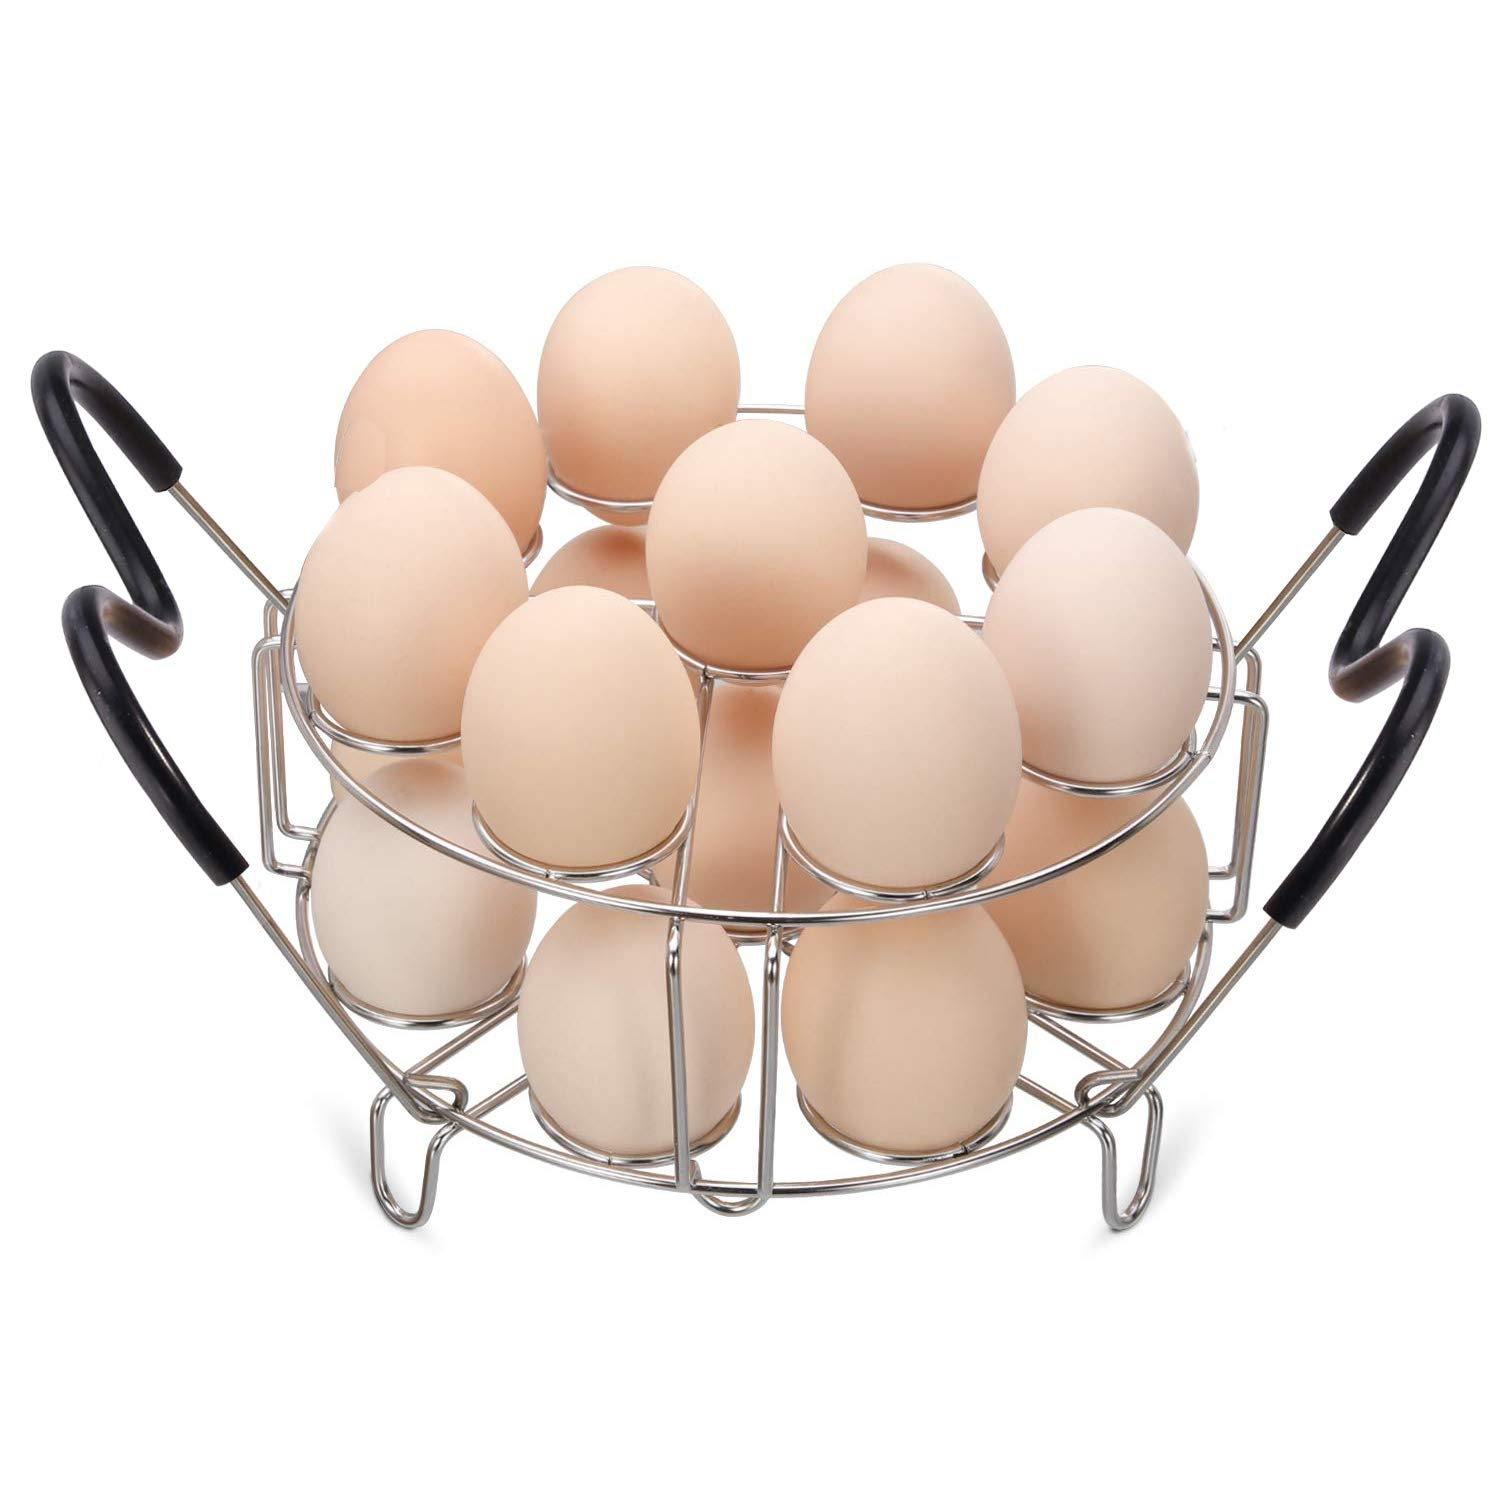 Maxracy Stackable Egg Steamer Rack Trivet 9 holes with Heat Resistant Handles for Instant Pot Accessories Stainless Steel Egg Assit fits 6qt 8qt Pressure Cooker(9 Holes Handle Set)